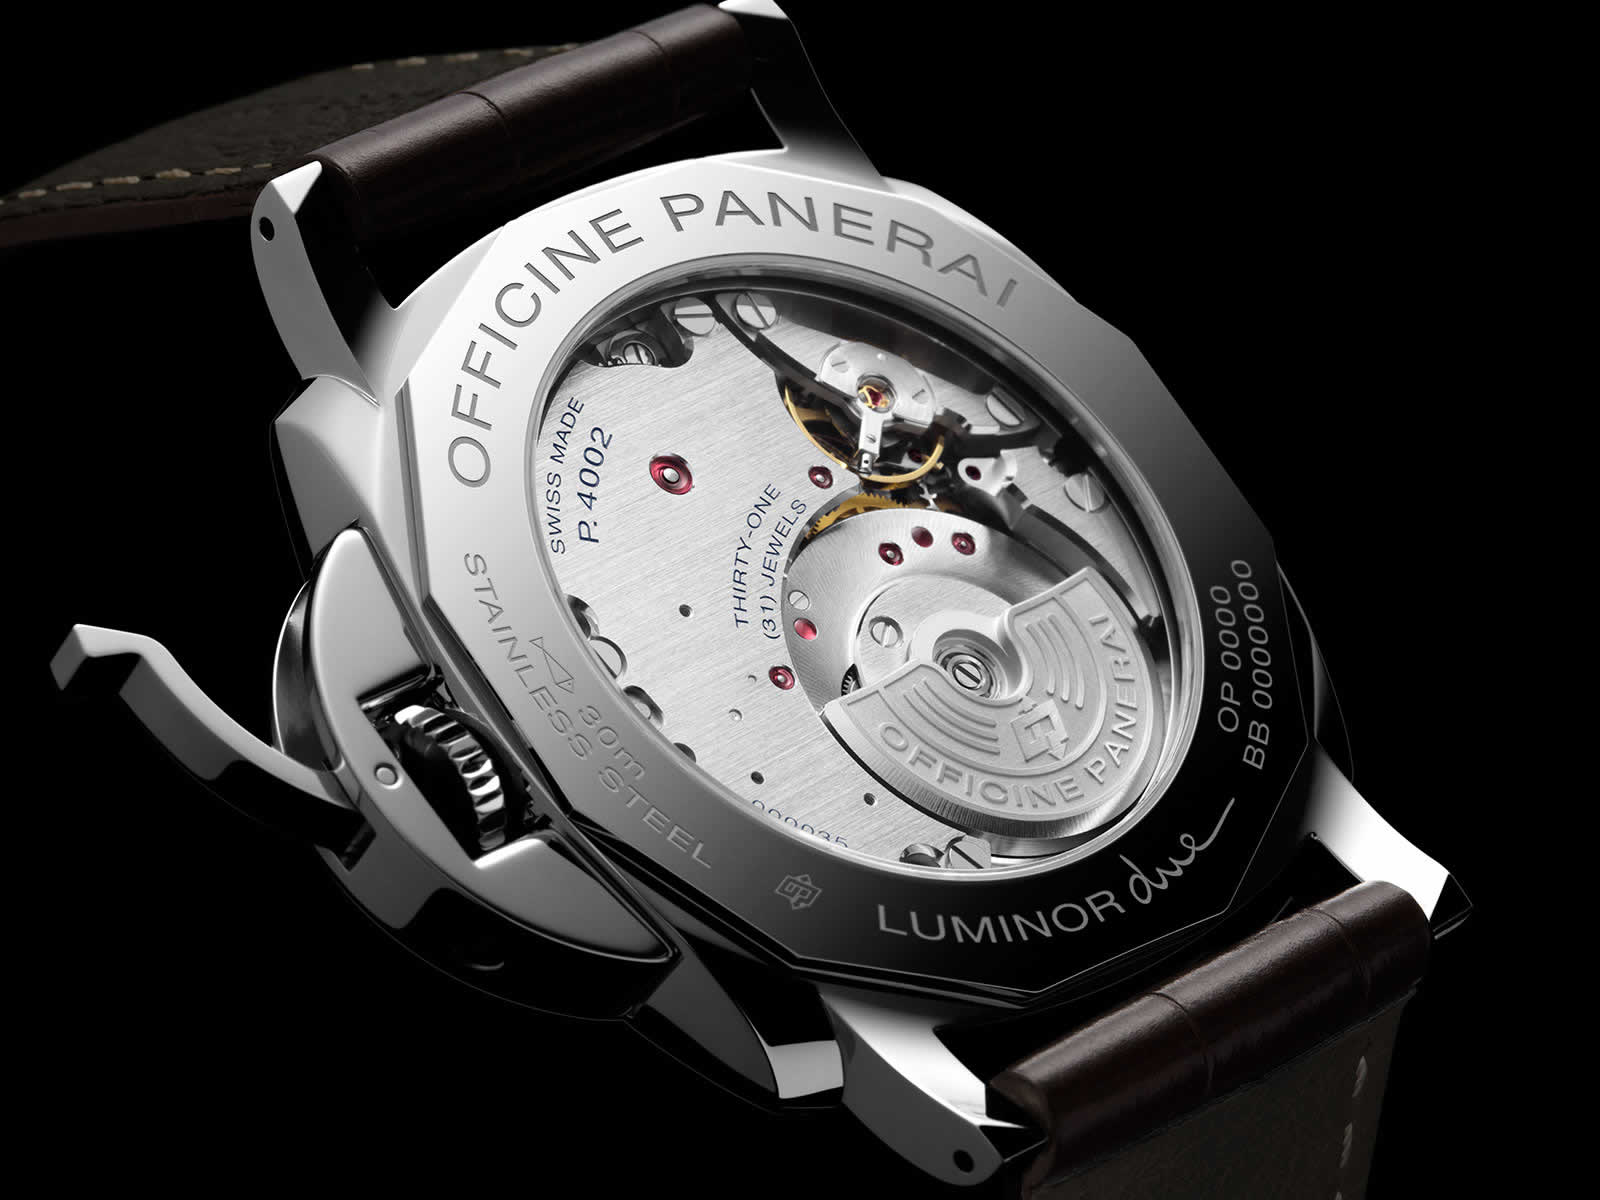 Panerai-Luminor-Due-3-Days-Gmt-Power-Reserve-Automatic-Pam00944-Sihh-2018-3.jpg